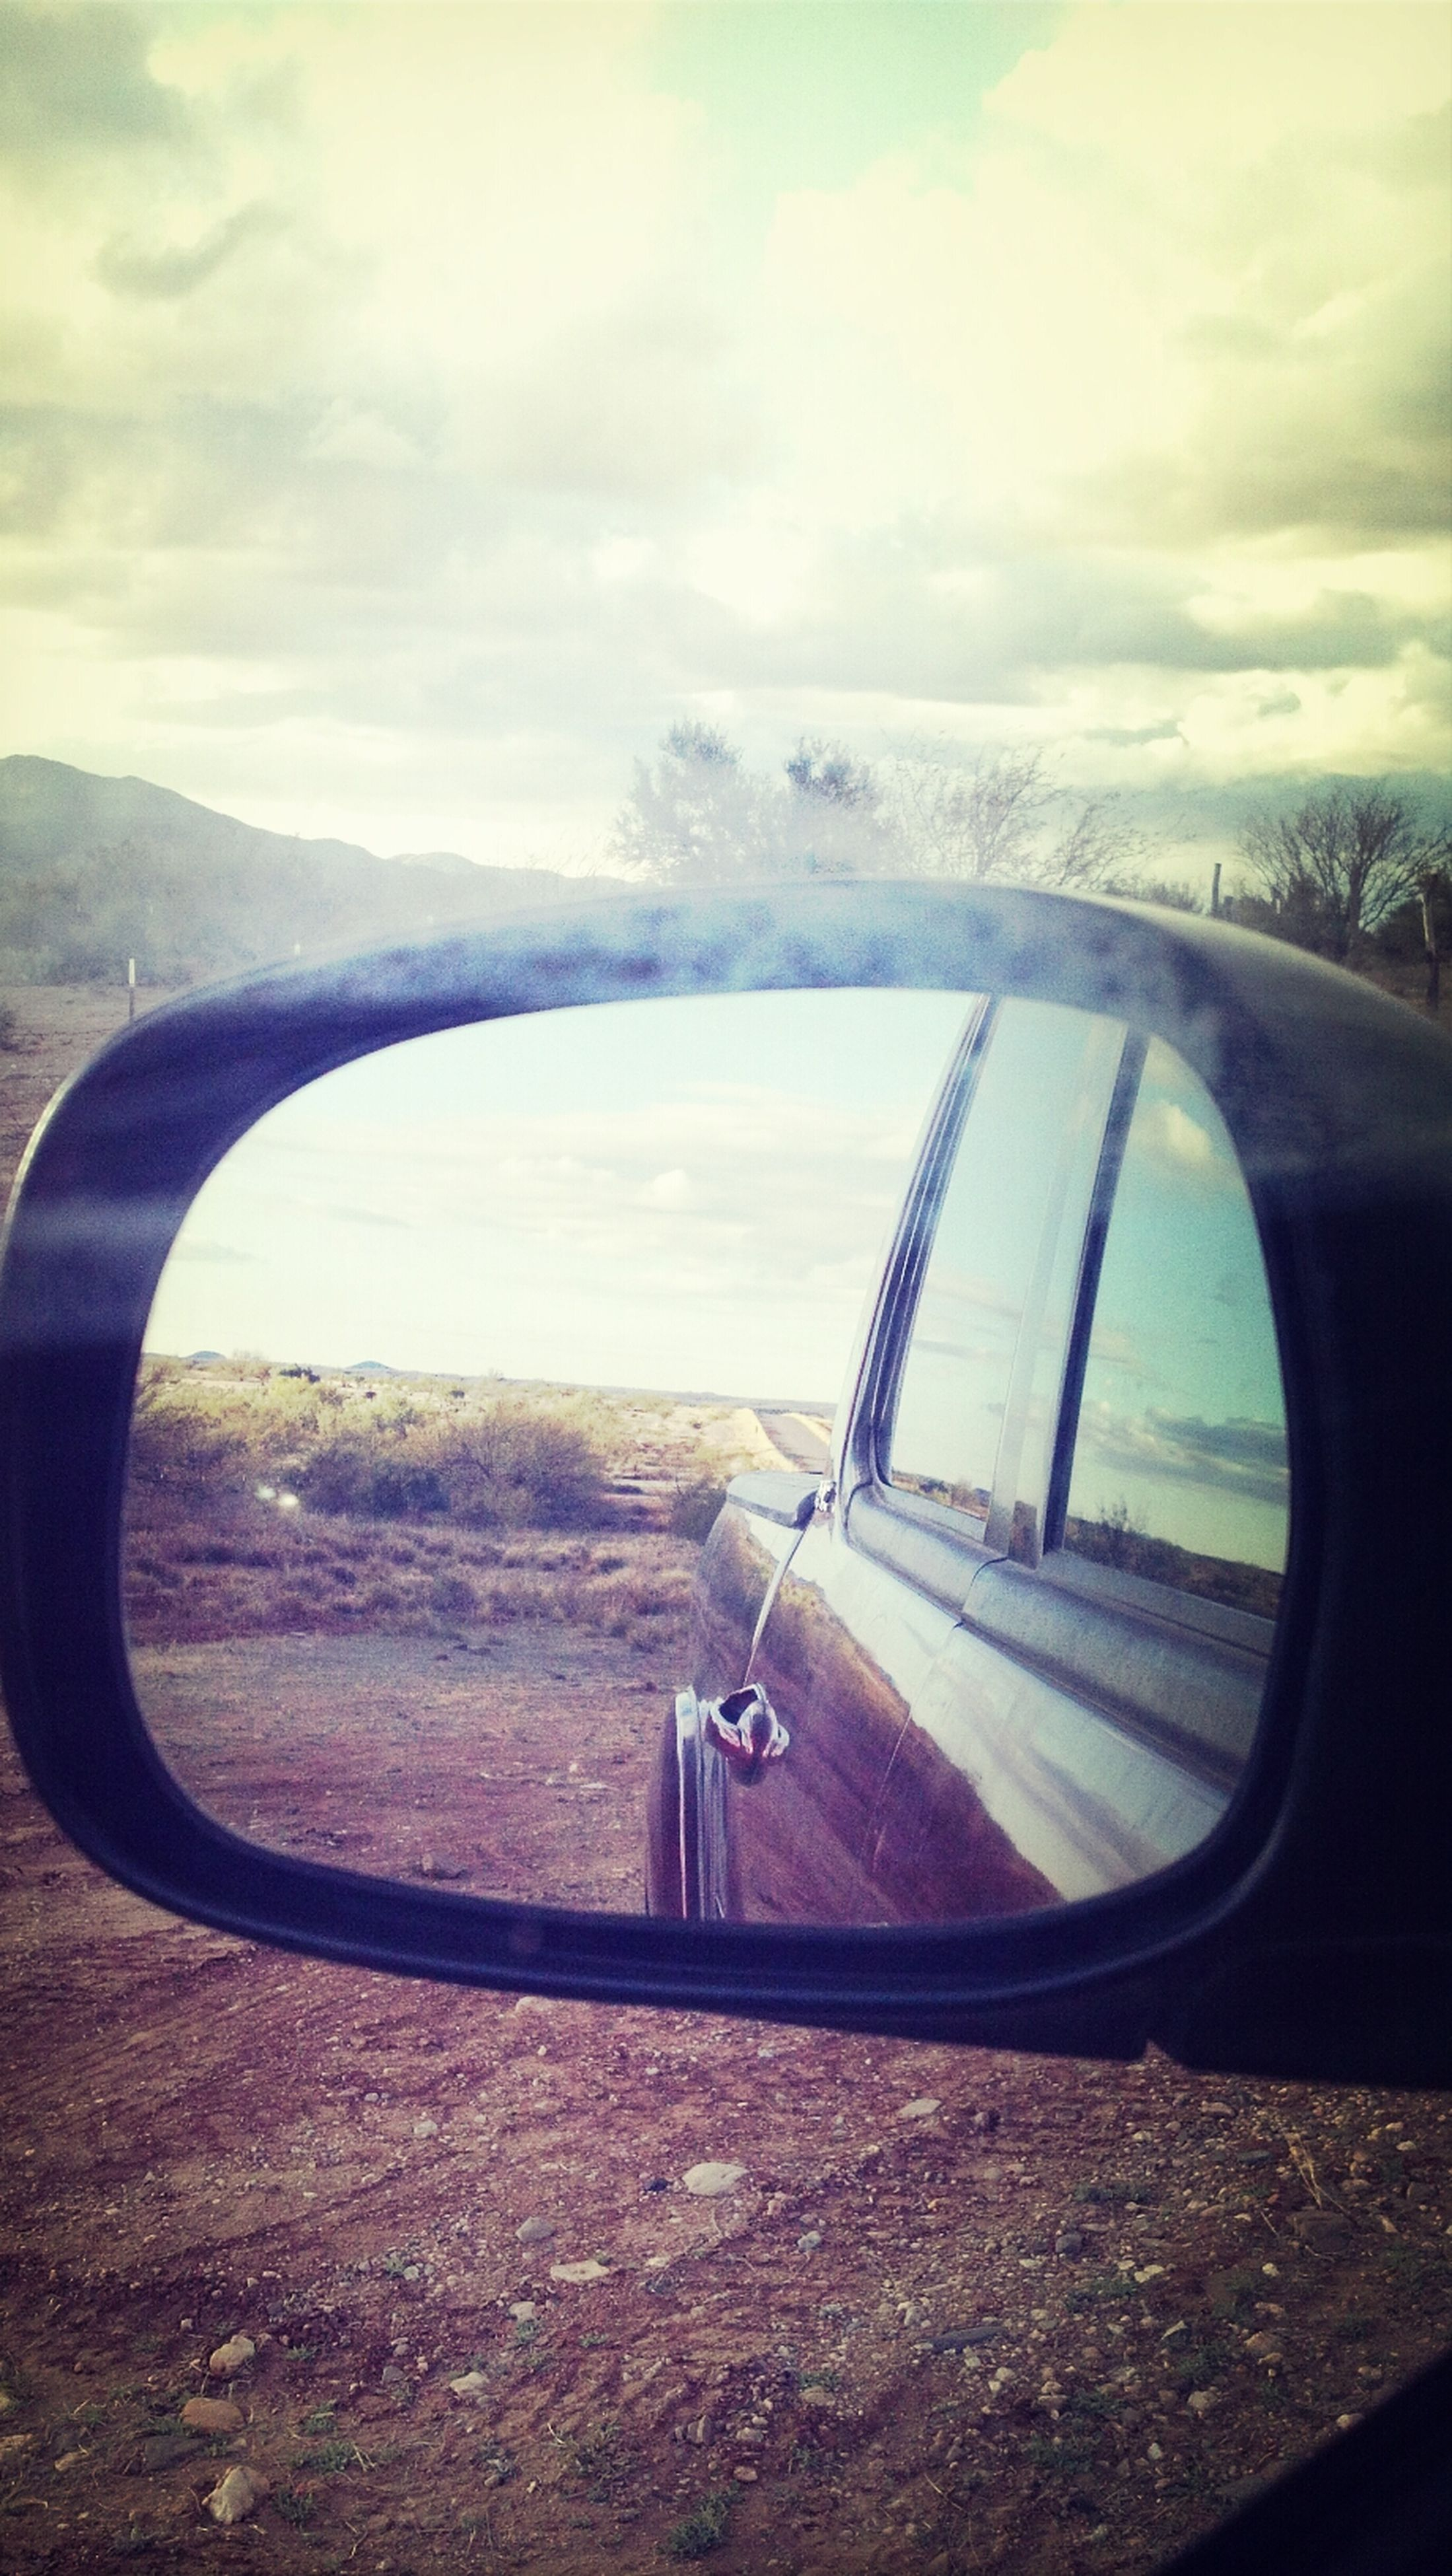 transportation, land vehicle, mode of transport, car, sky, road, side-view mirror, cloud - sky, glass - material, vehicle interior, transparent, reflection, car interior, street, windshield, travel, cloud, part of, on the move, window